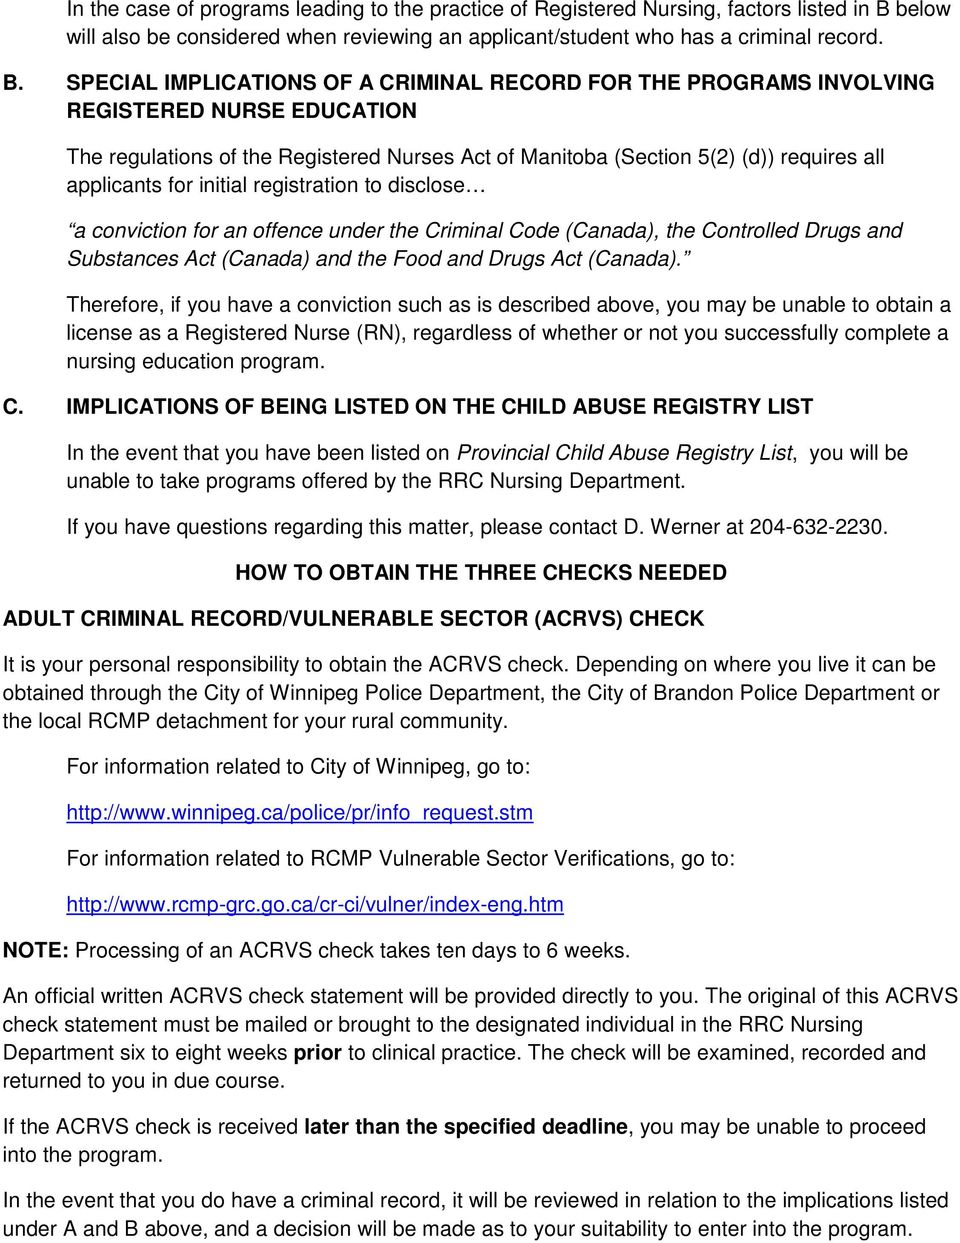 Adult Criminal Record/Vulnerable Sector (ACRVS) Check